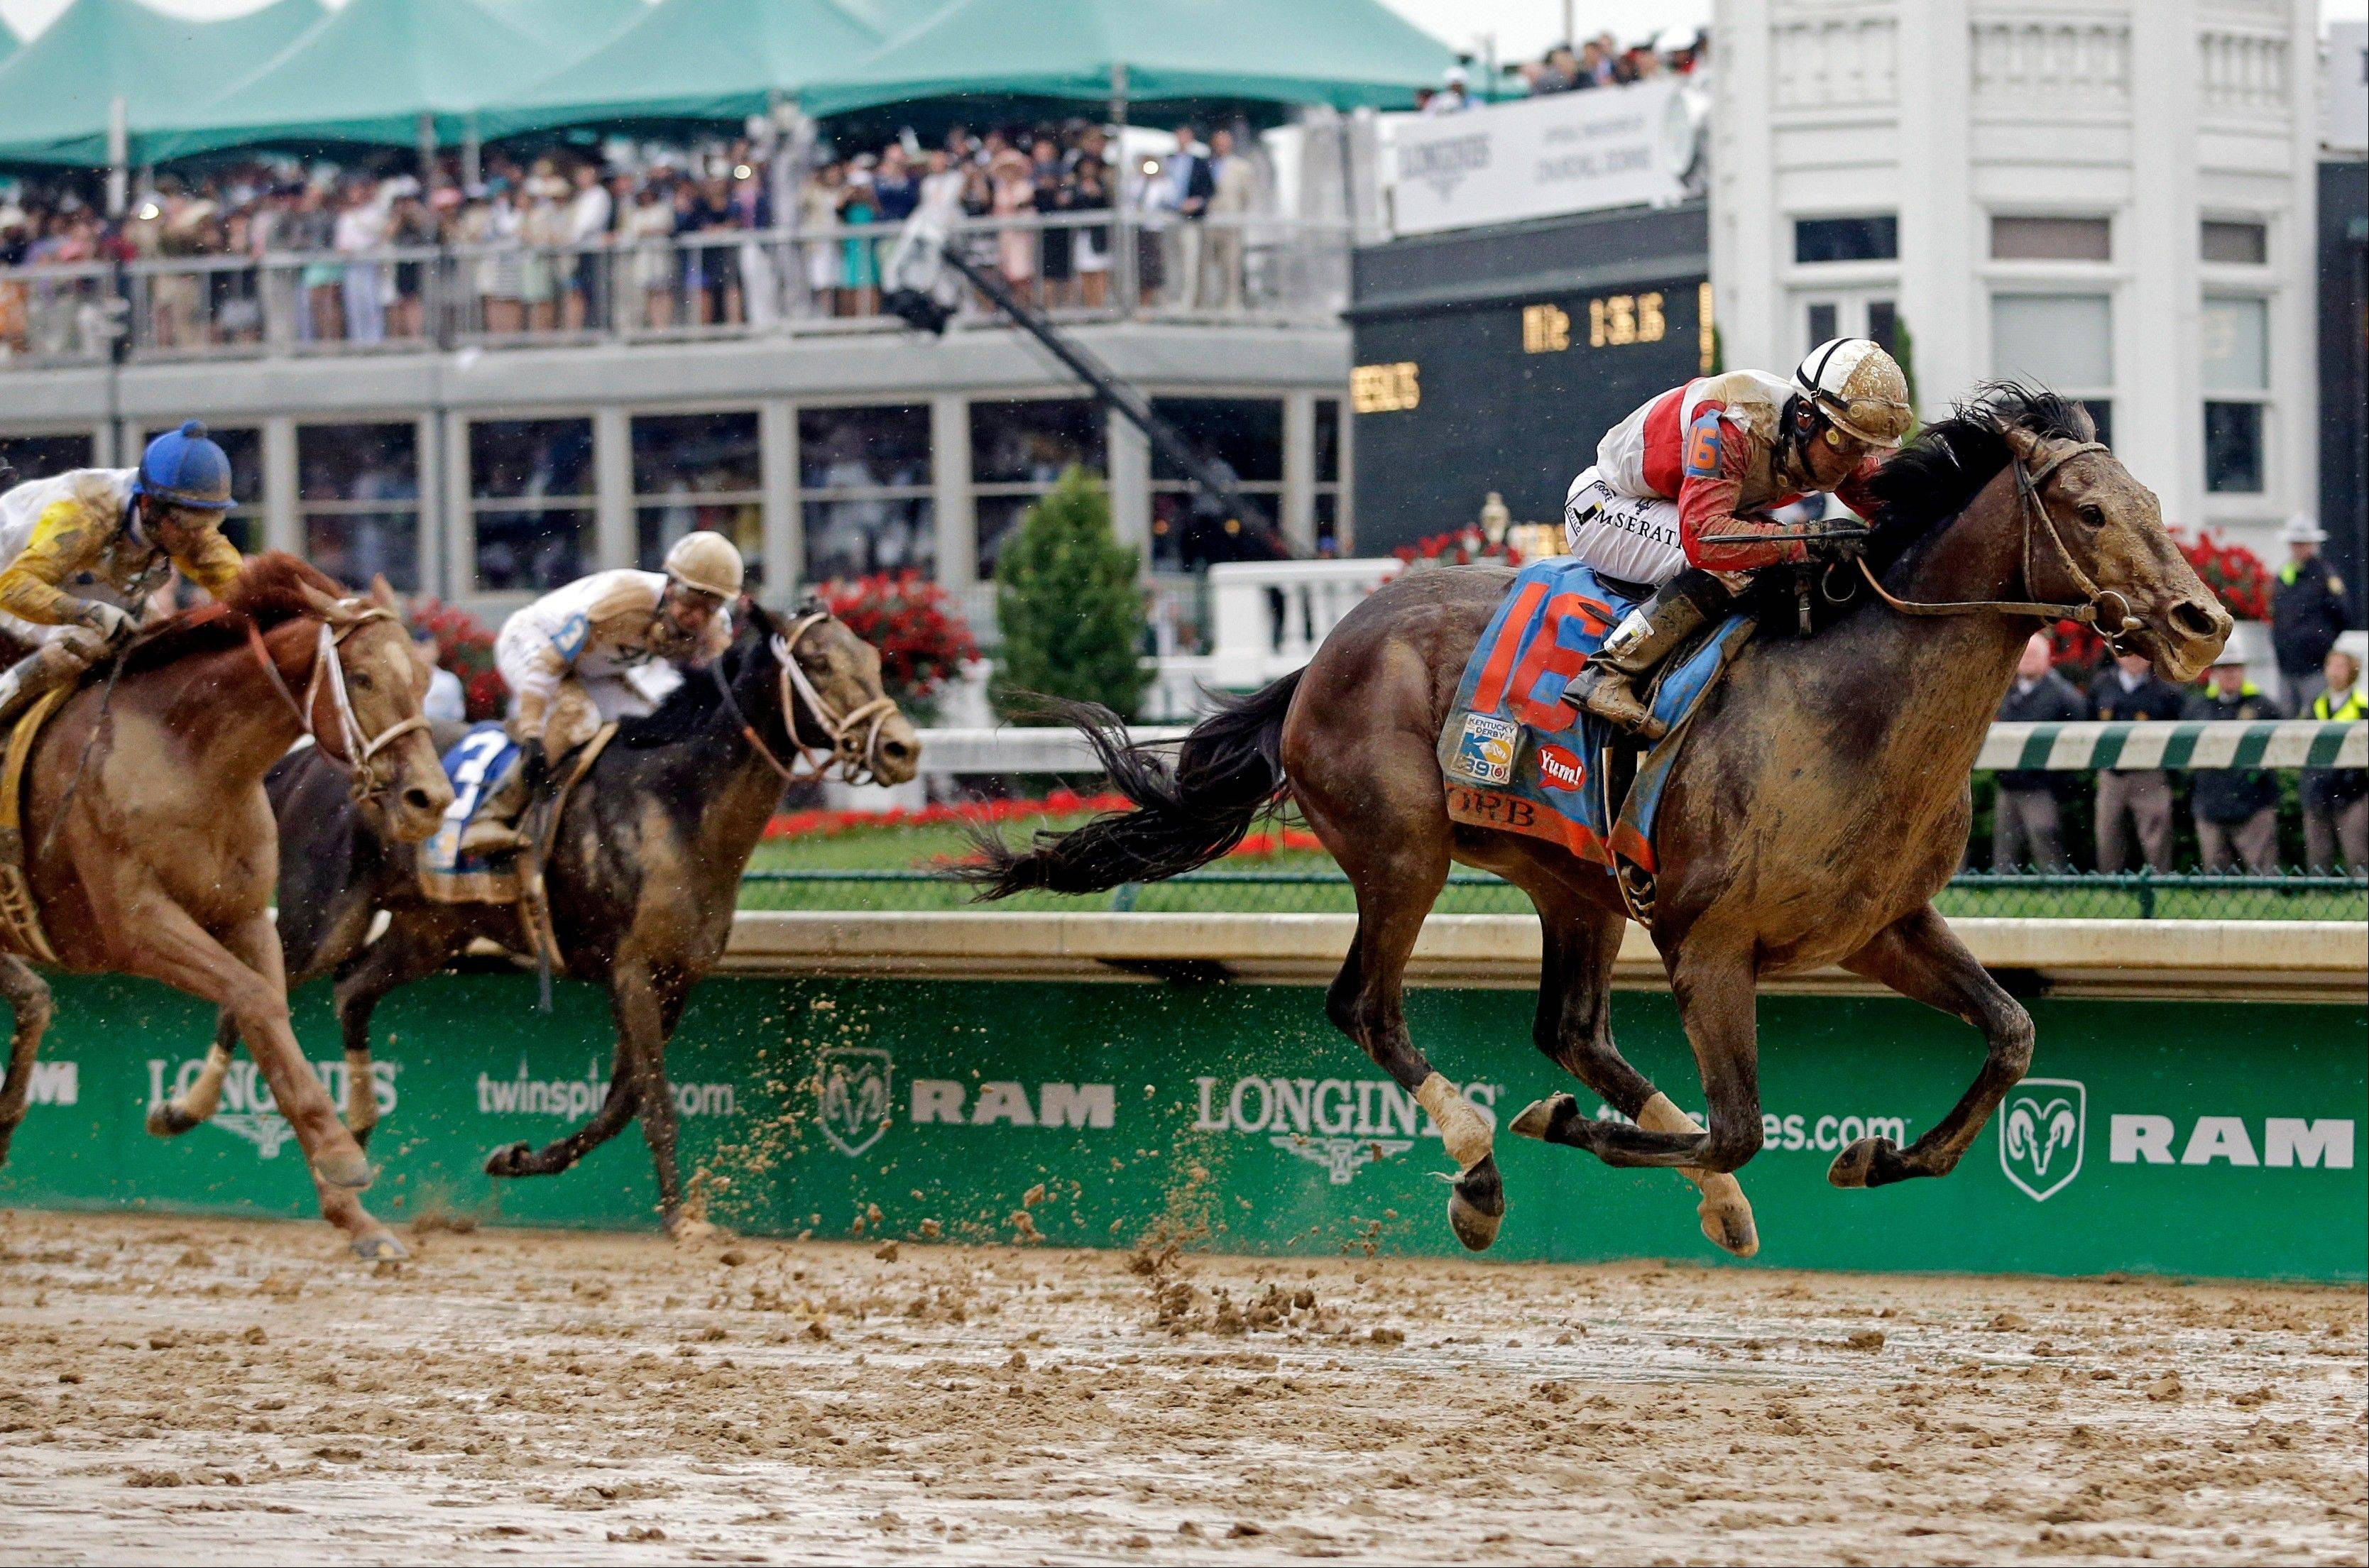 Joel Rosario rides Orb during the 139th Kentucky Derby at Churchill Downs Saturday, May 4, 2013, in Louisville, Ky.